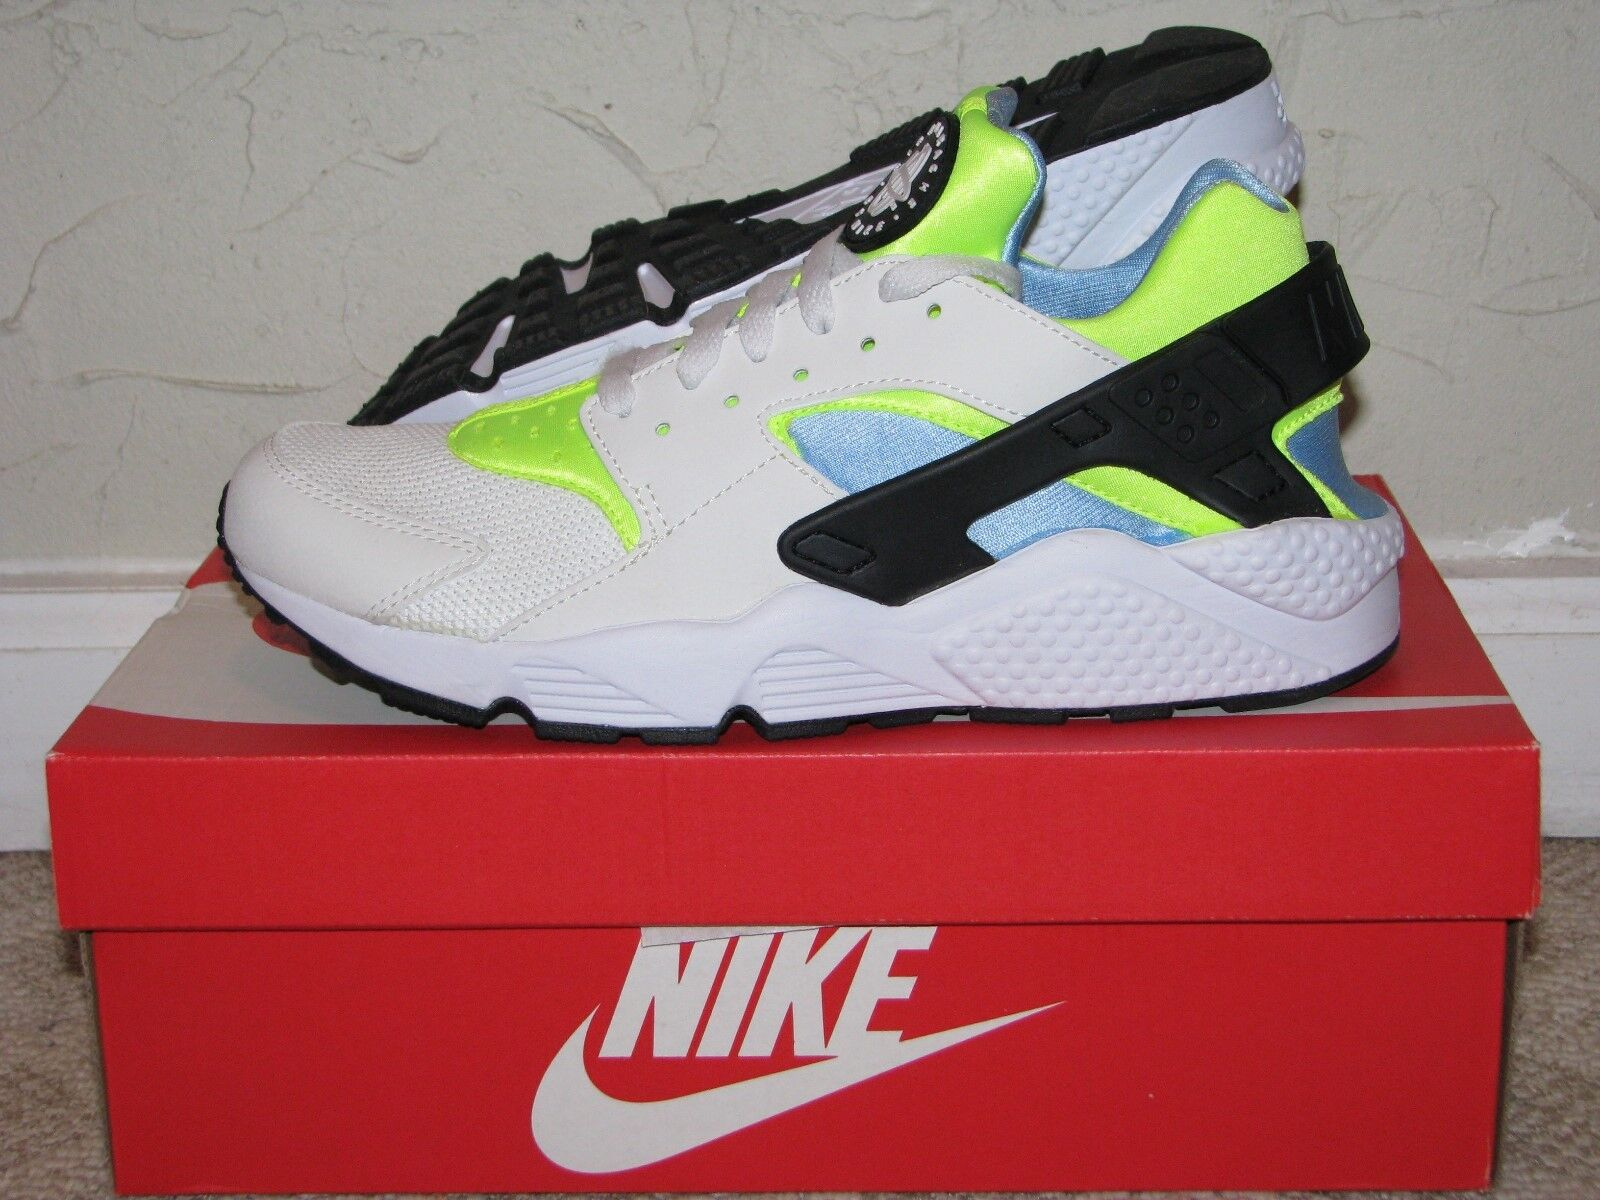 release date 6f207 1ee8a Nike Air Huarache Off White / Volt / Blue Mens Size 10.5 DS NEW! 318429-107